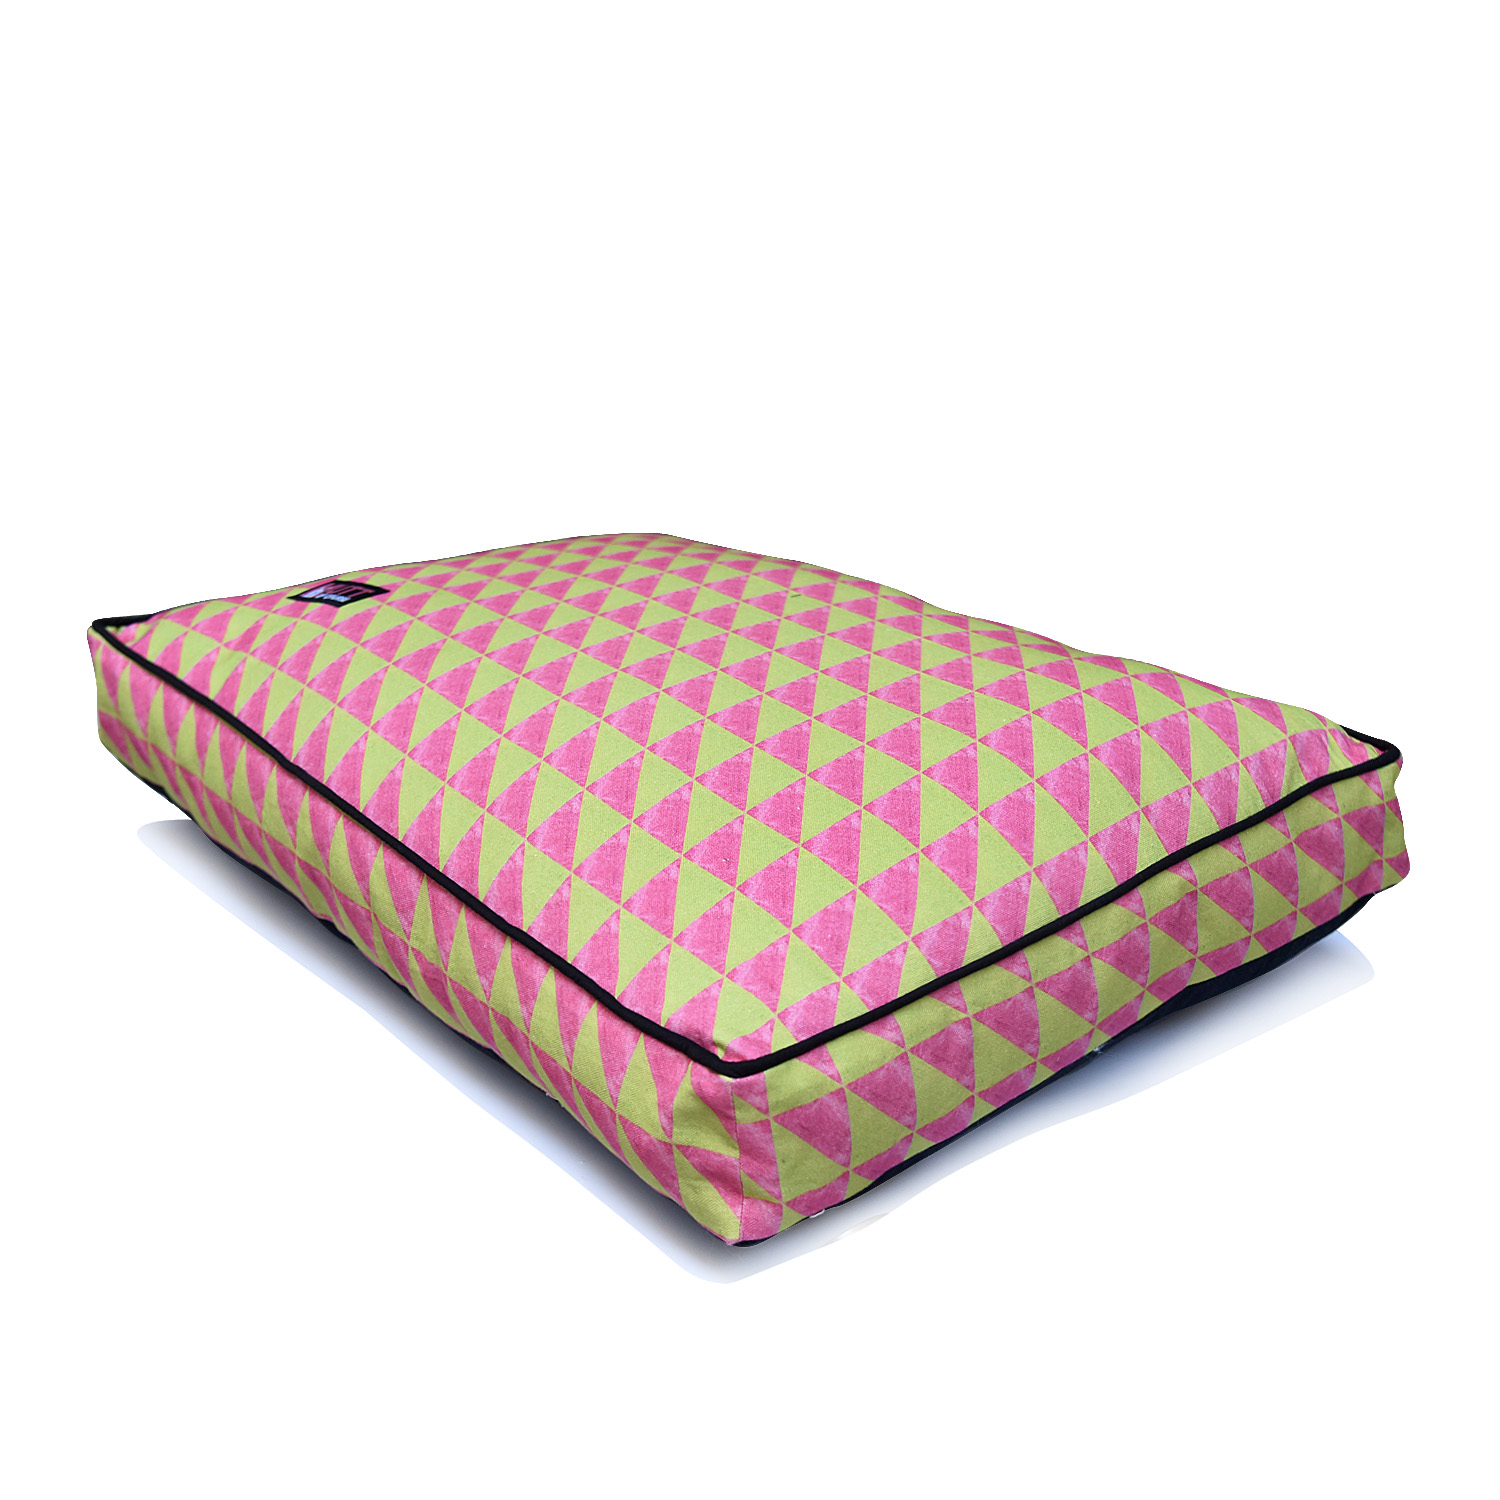 Mutt Of Course Water Color Pink & Green Flat Bed - Xlarge